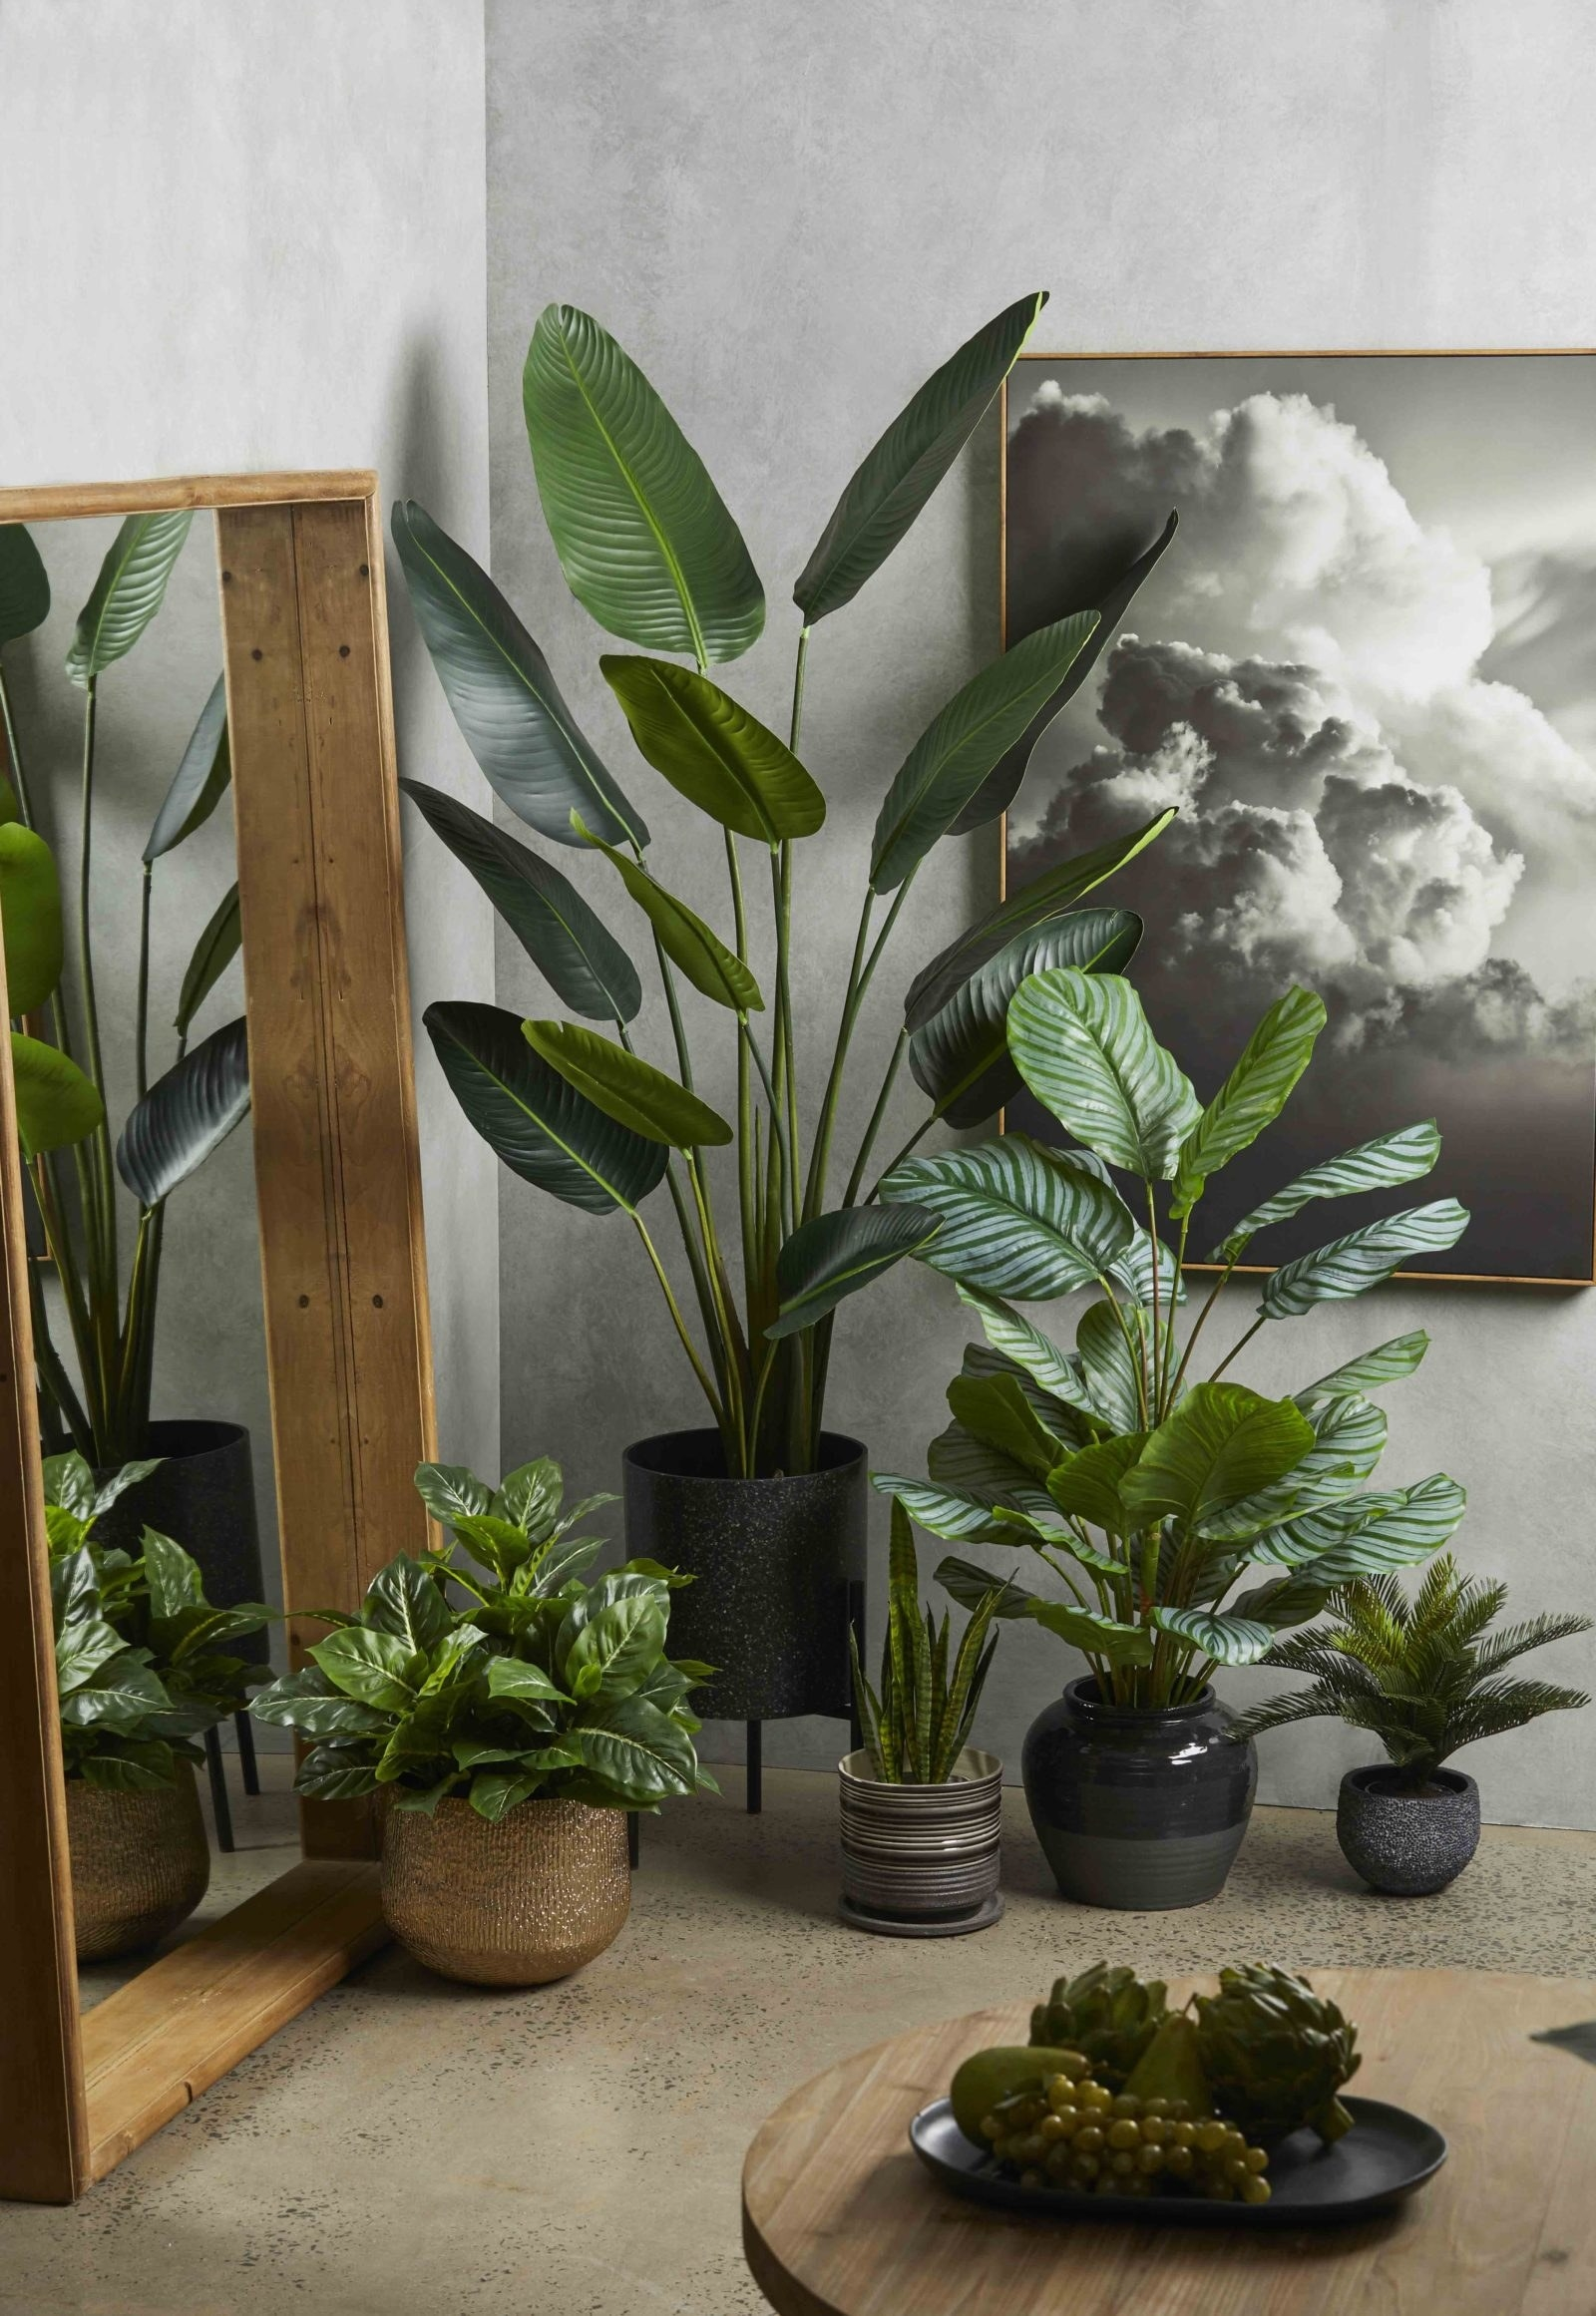 13 Plant Buys You Can Totally Justify Now That Our Lord And Saviour Springtime Is Coming